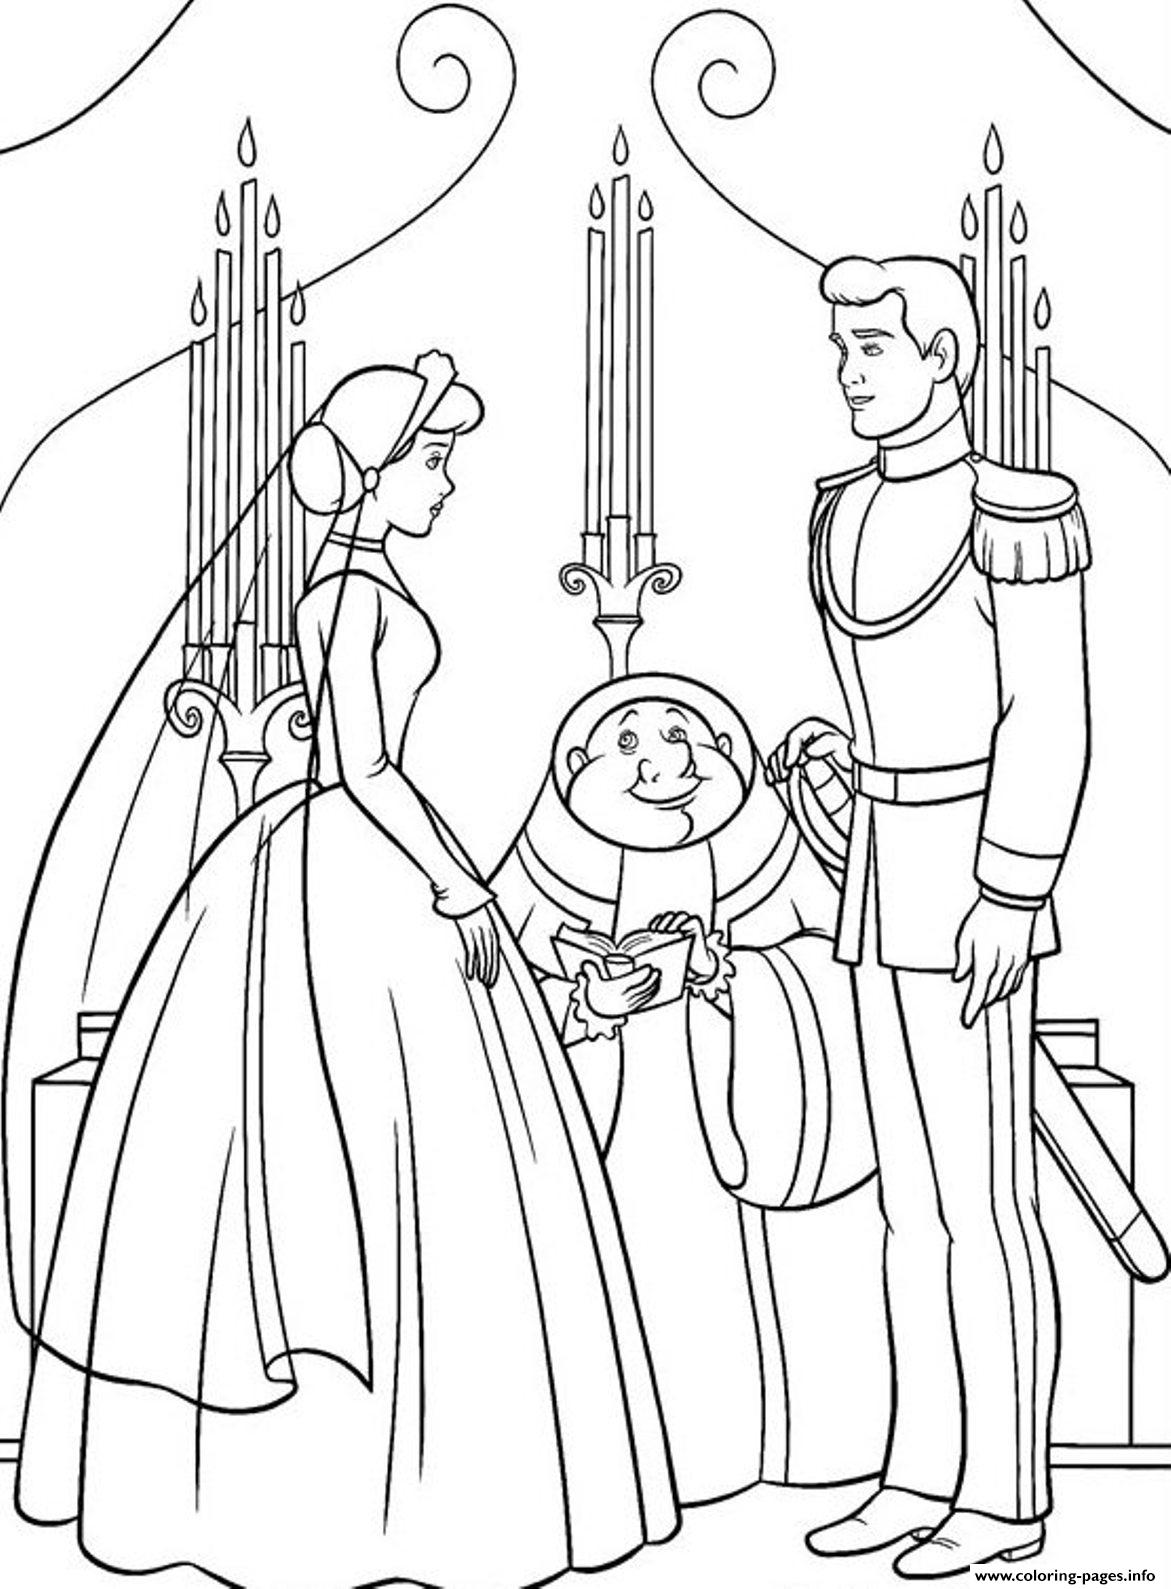 Princess Married Prince Cinderella Kids